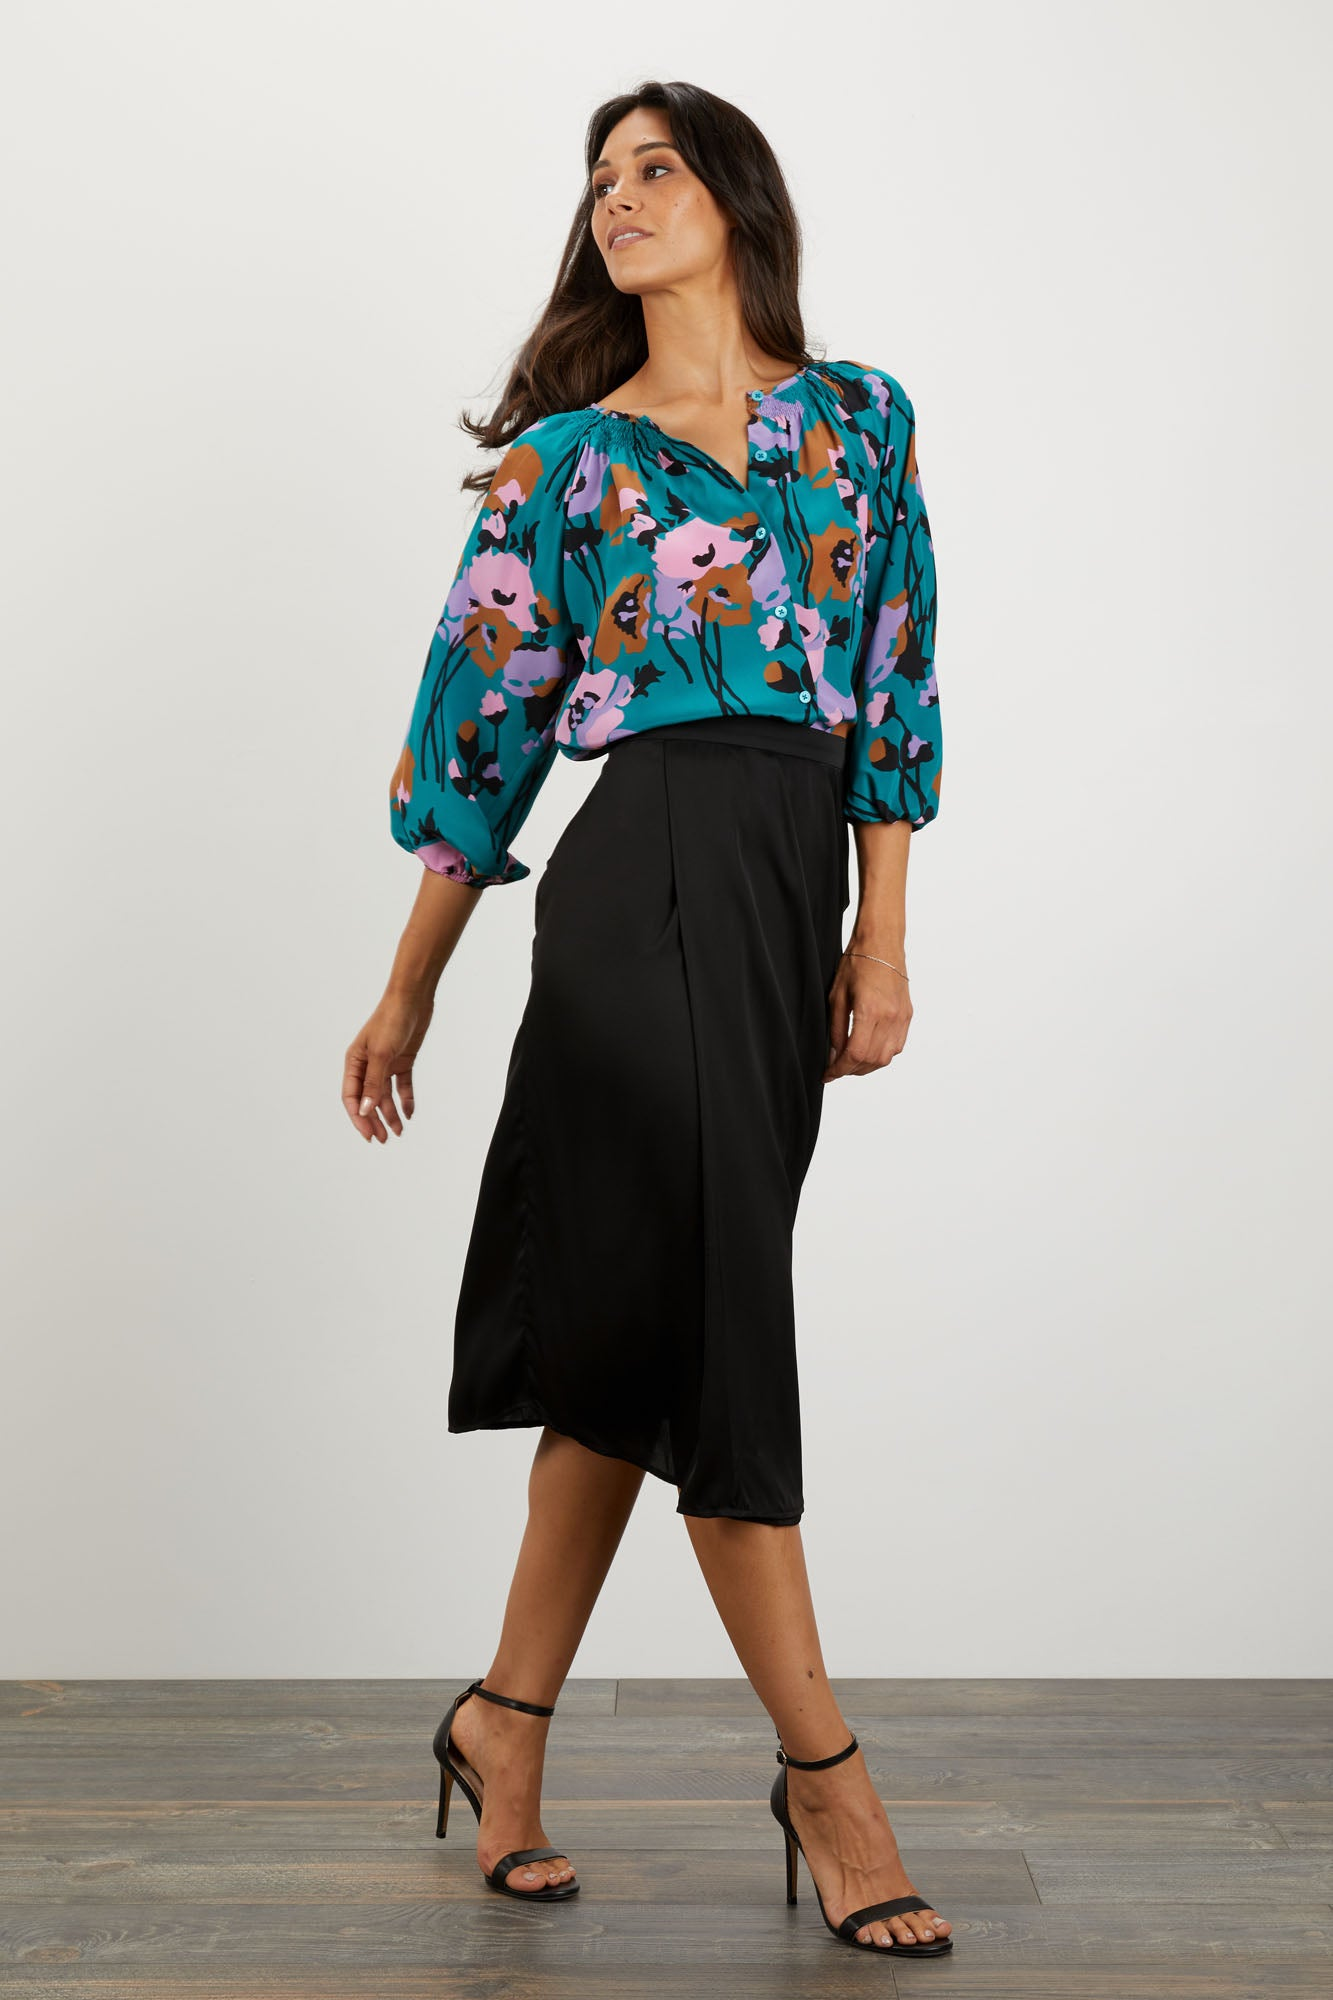 The Classic Blouse | Dini's Navy Floral